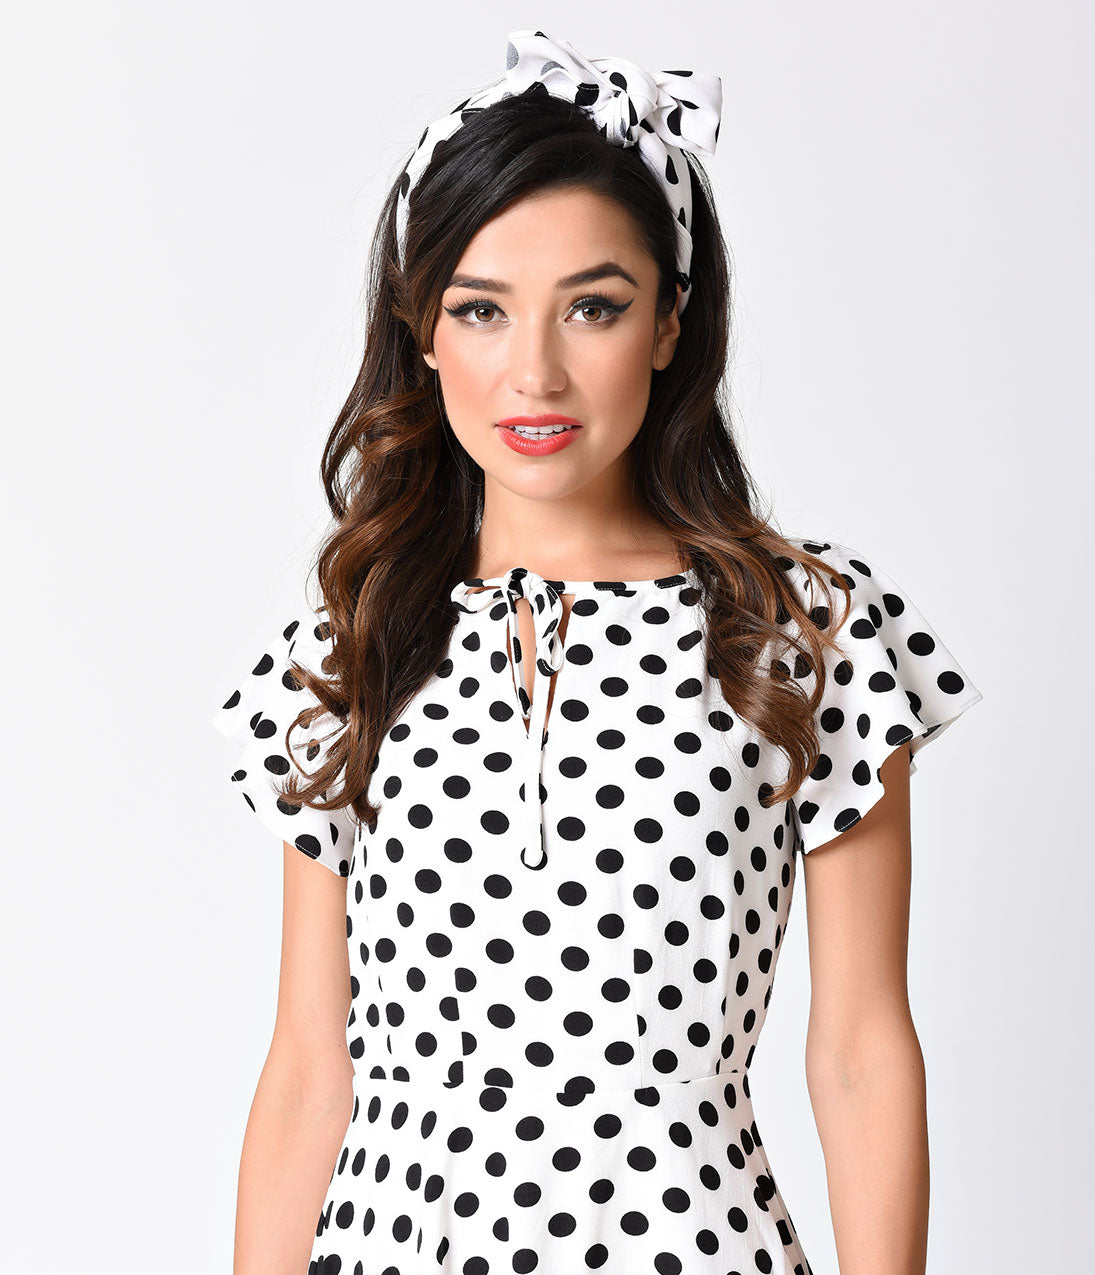 d926b7739277 Unique_Vintage_Retro_Pin-Up_White_Black_Polka_Dot_Chiffon_Hair_Scarf_1.jpg?v=1516330999